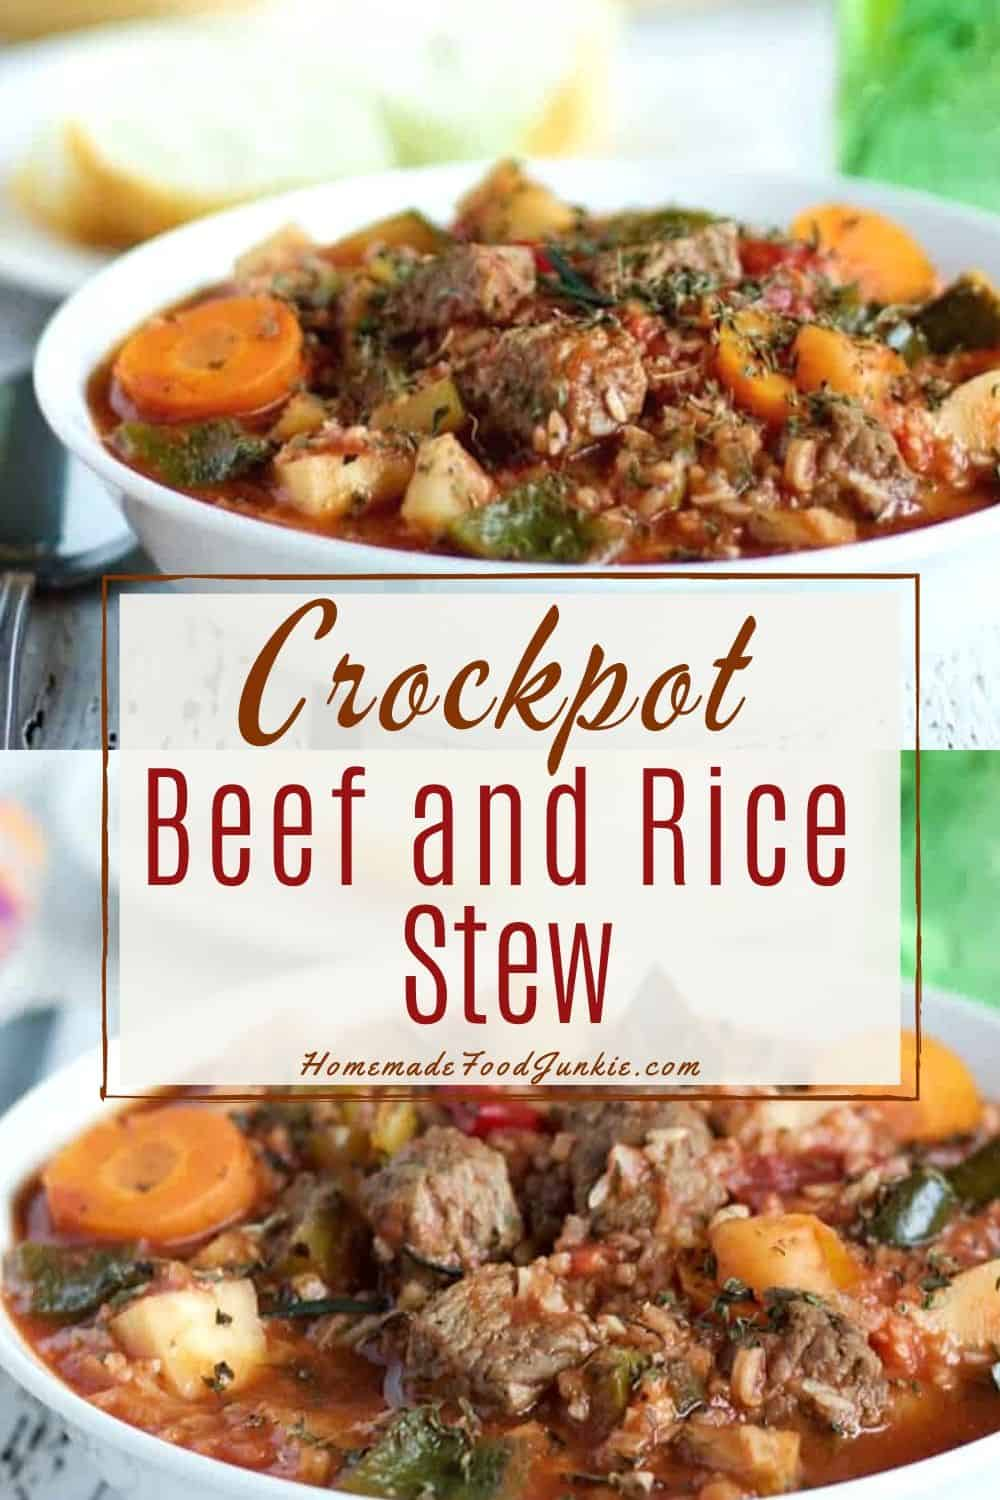 Crockpot Beef and Rice Stew-pin image